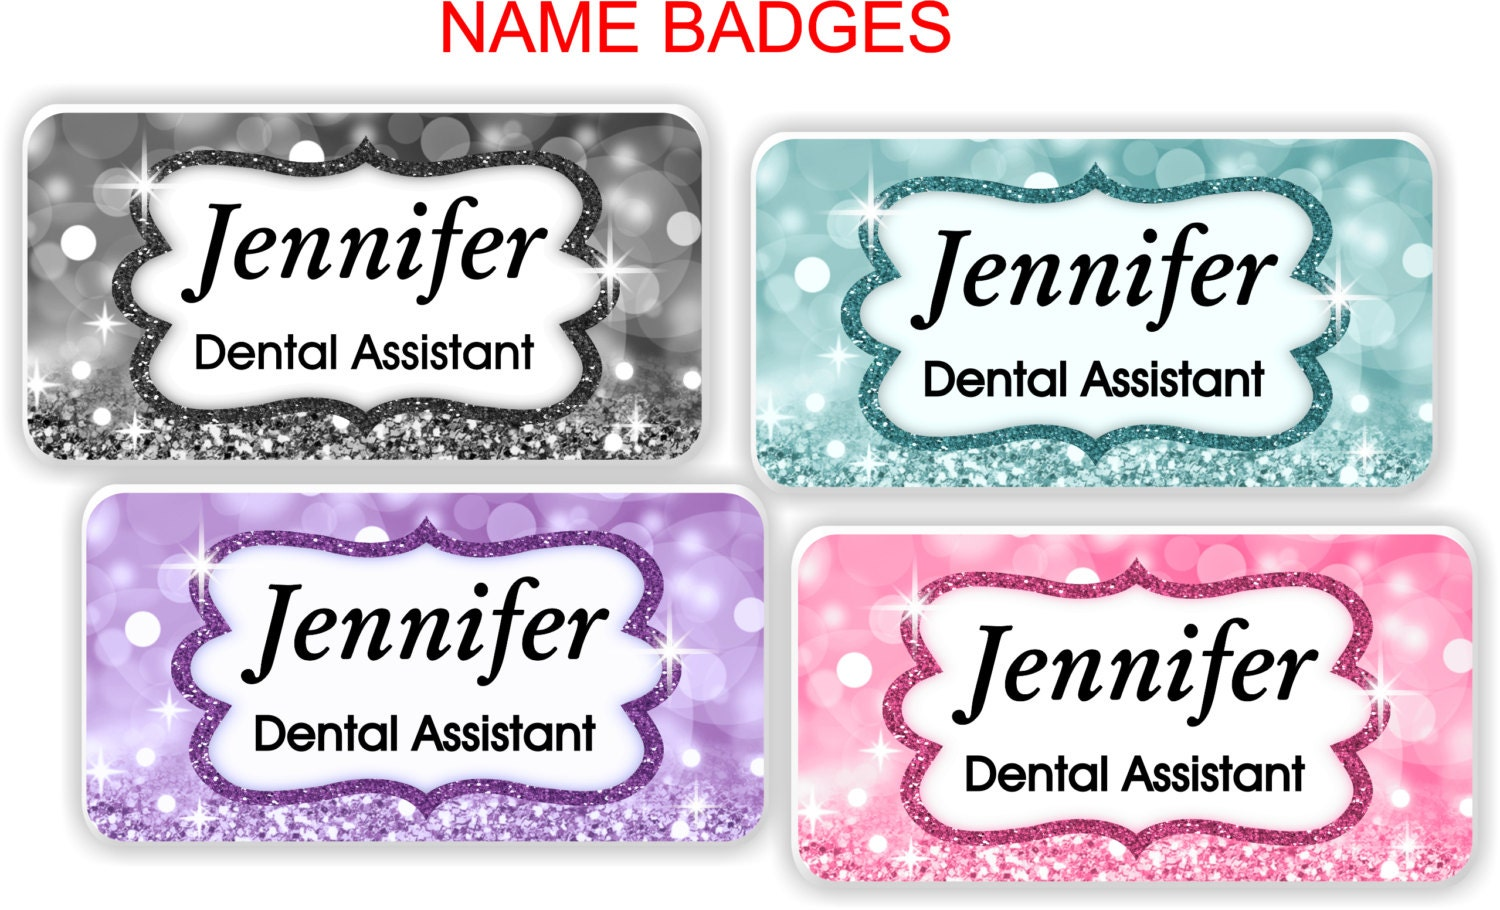 Name Badge: Magnetic Name Badge Magnetic Name Tag ID Tag With Magnetic